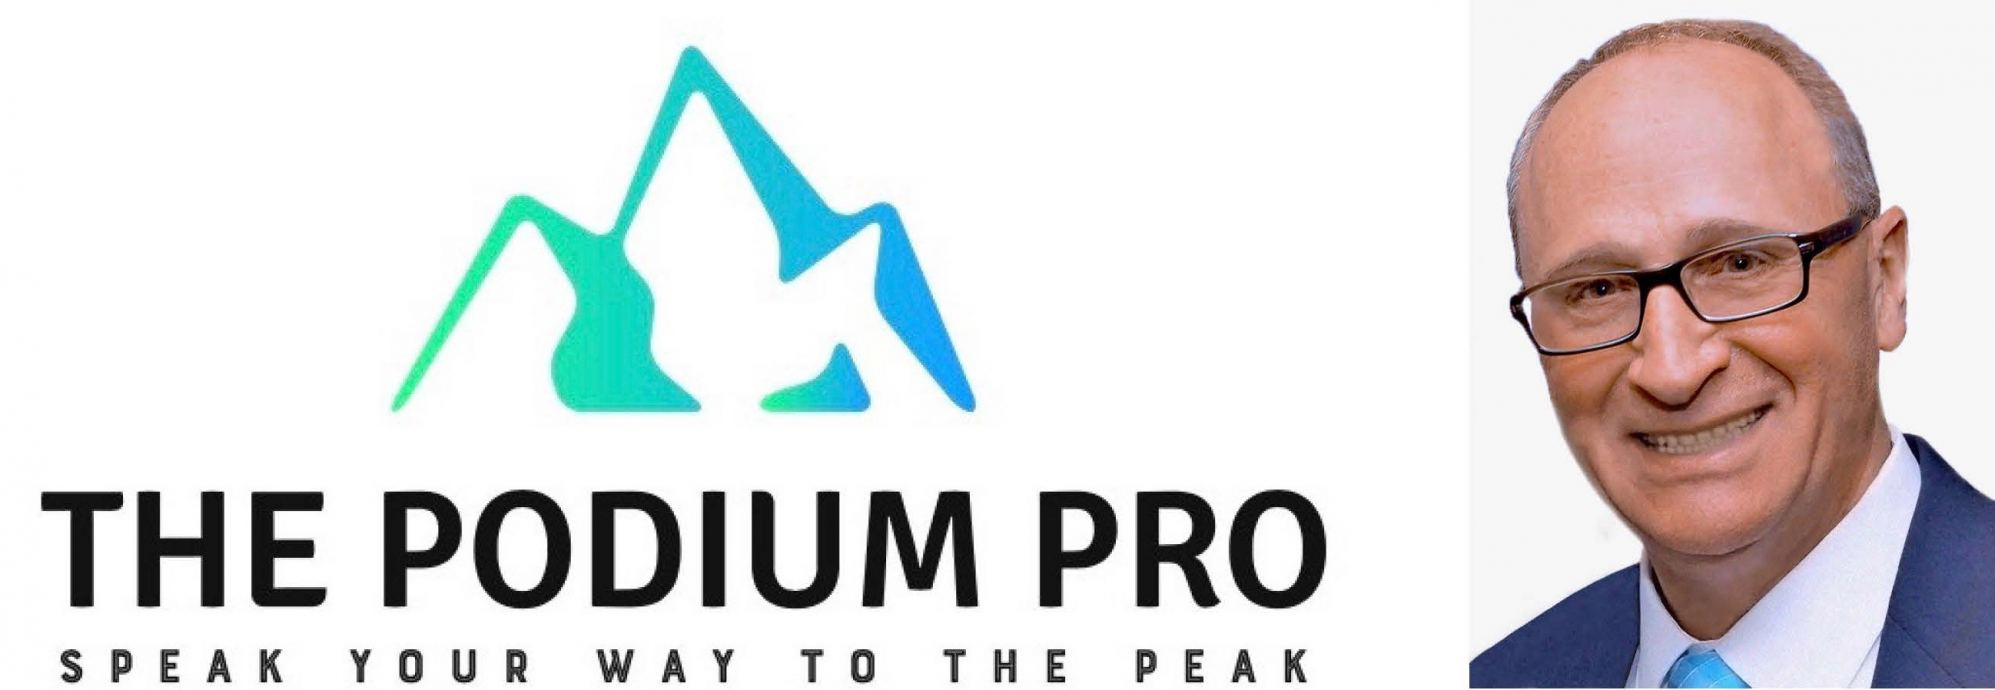 The Podium Pro - Home of the Standing O Logo